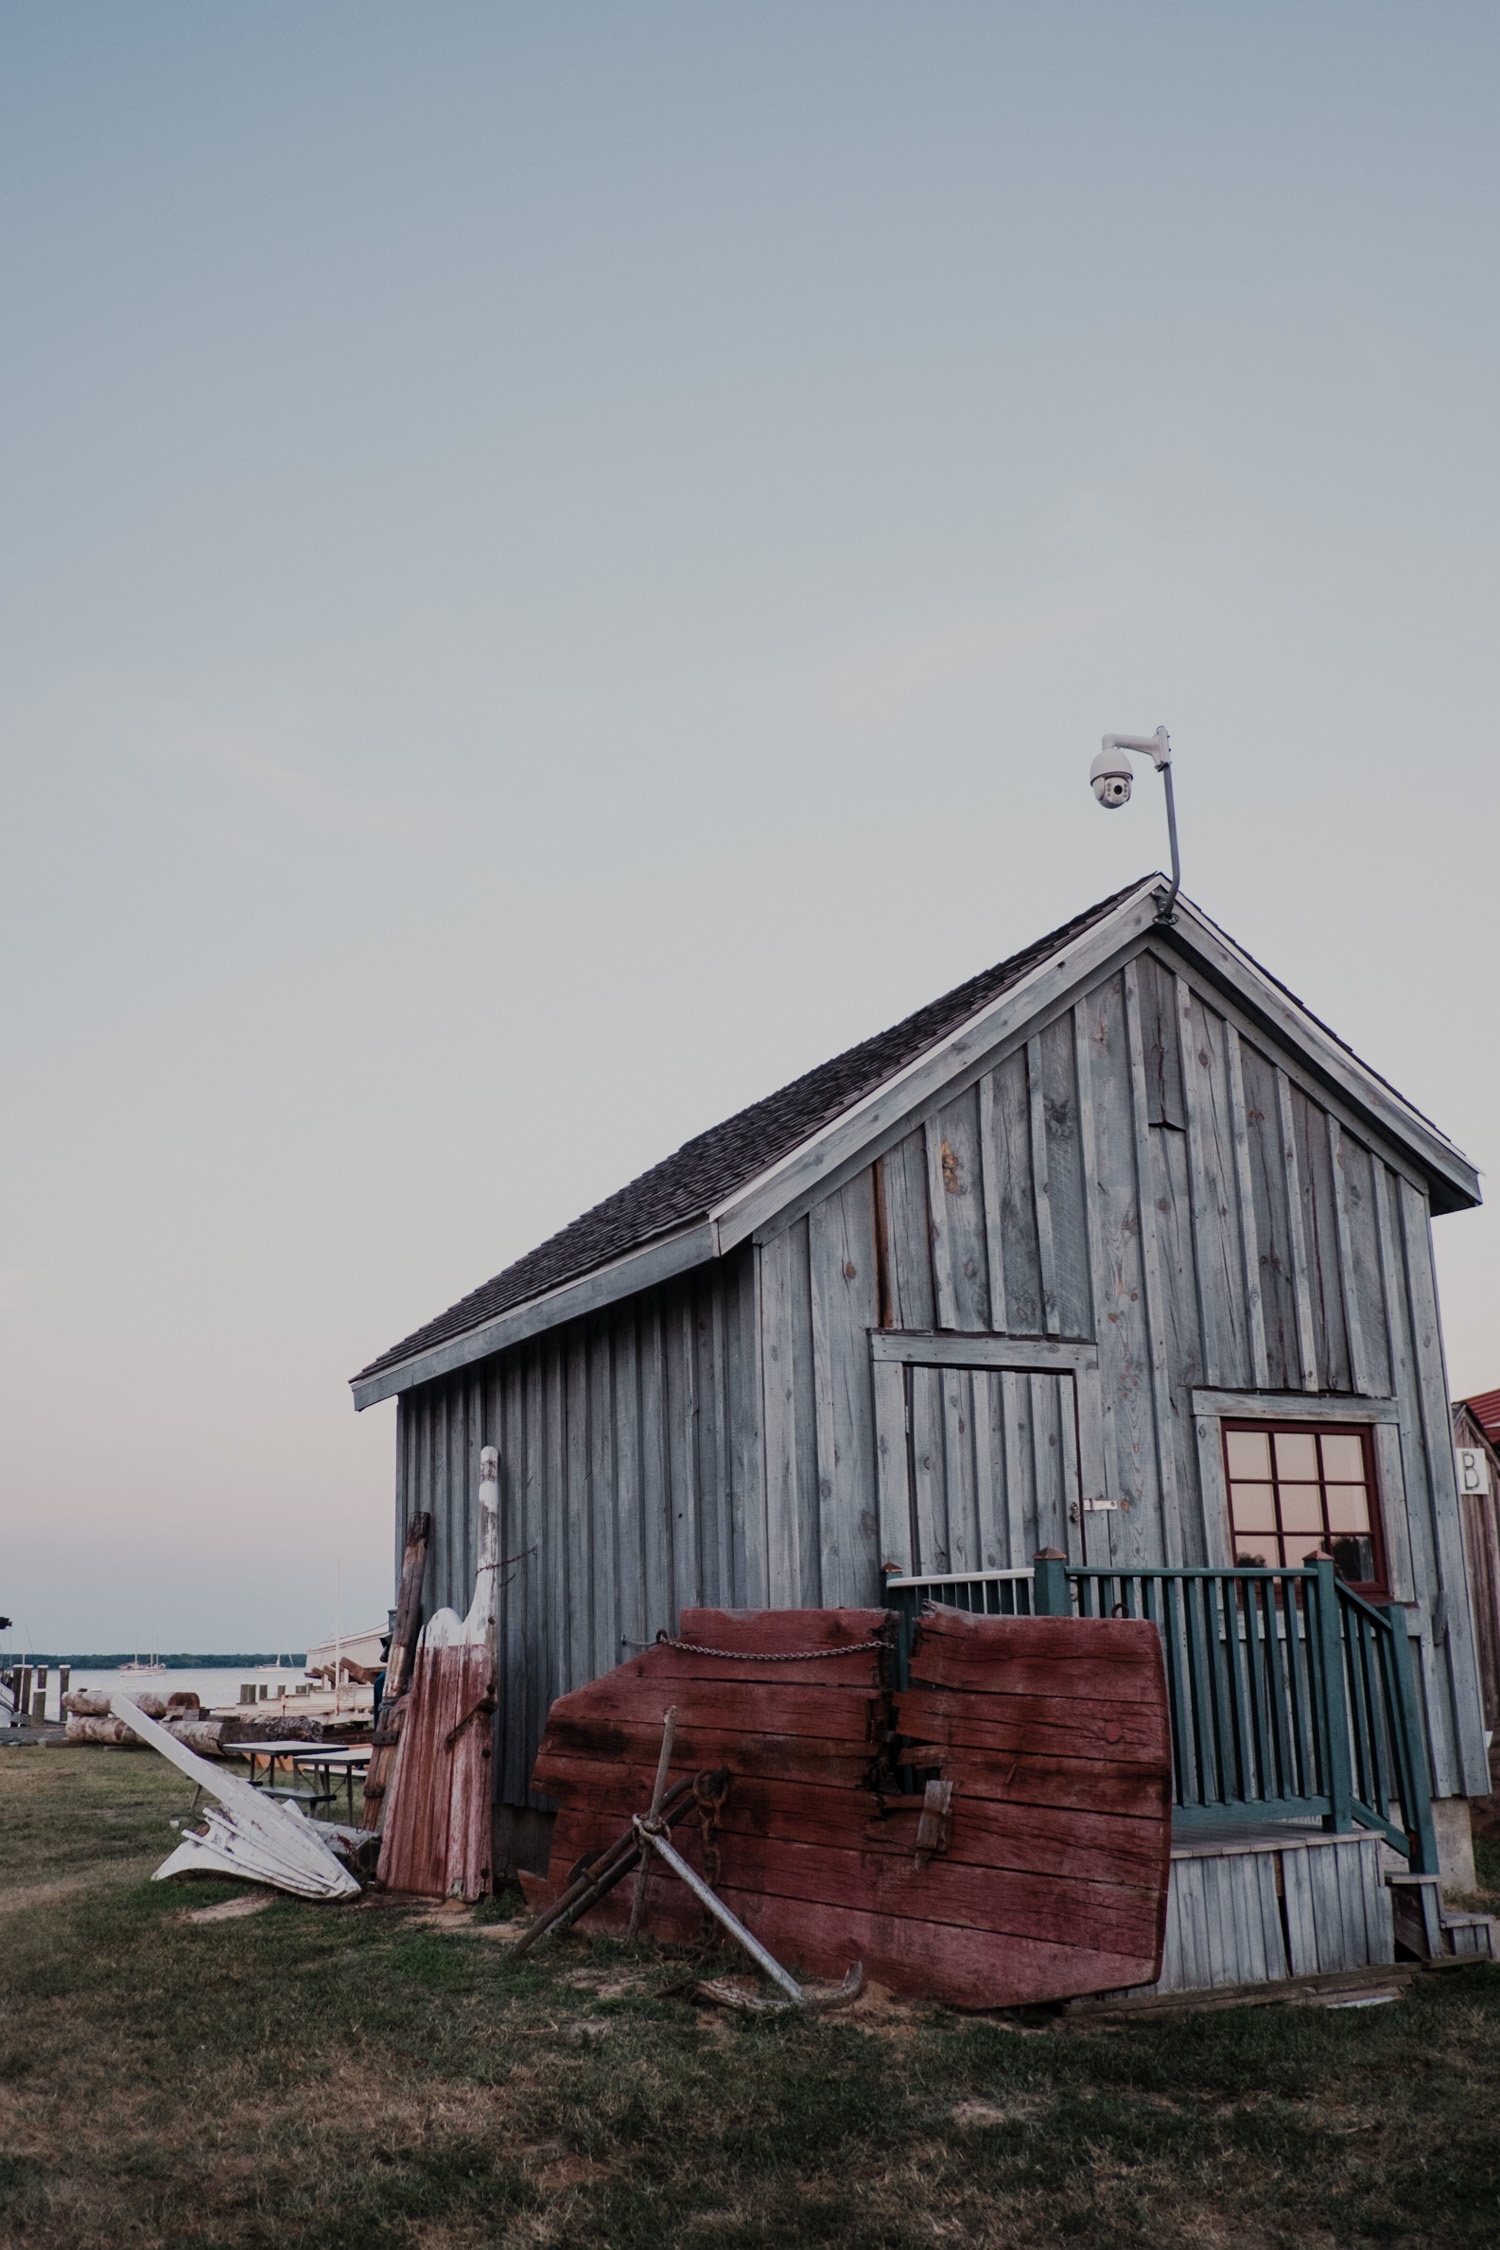 chesapeake bay maritime museum old boat house